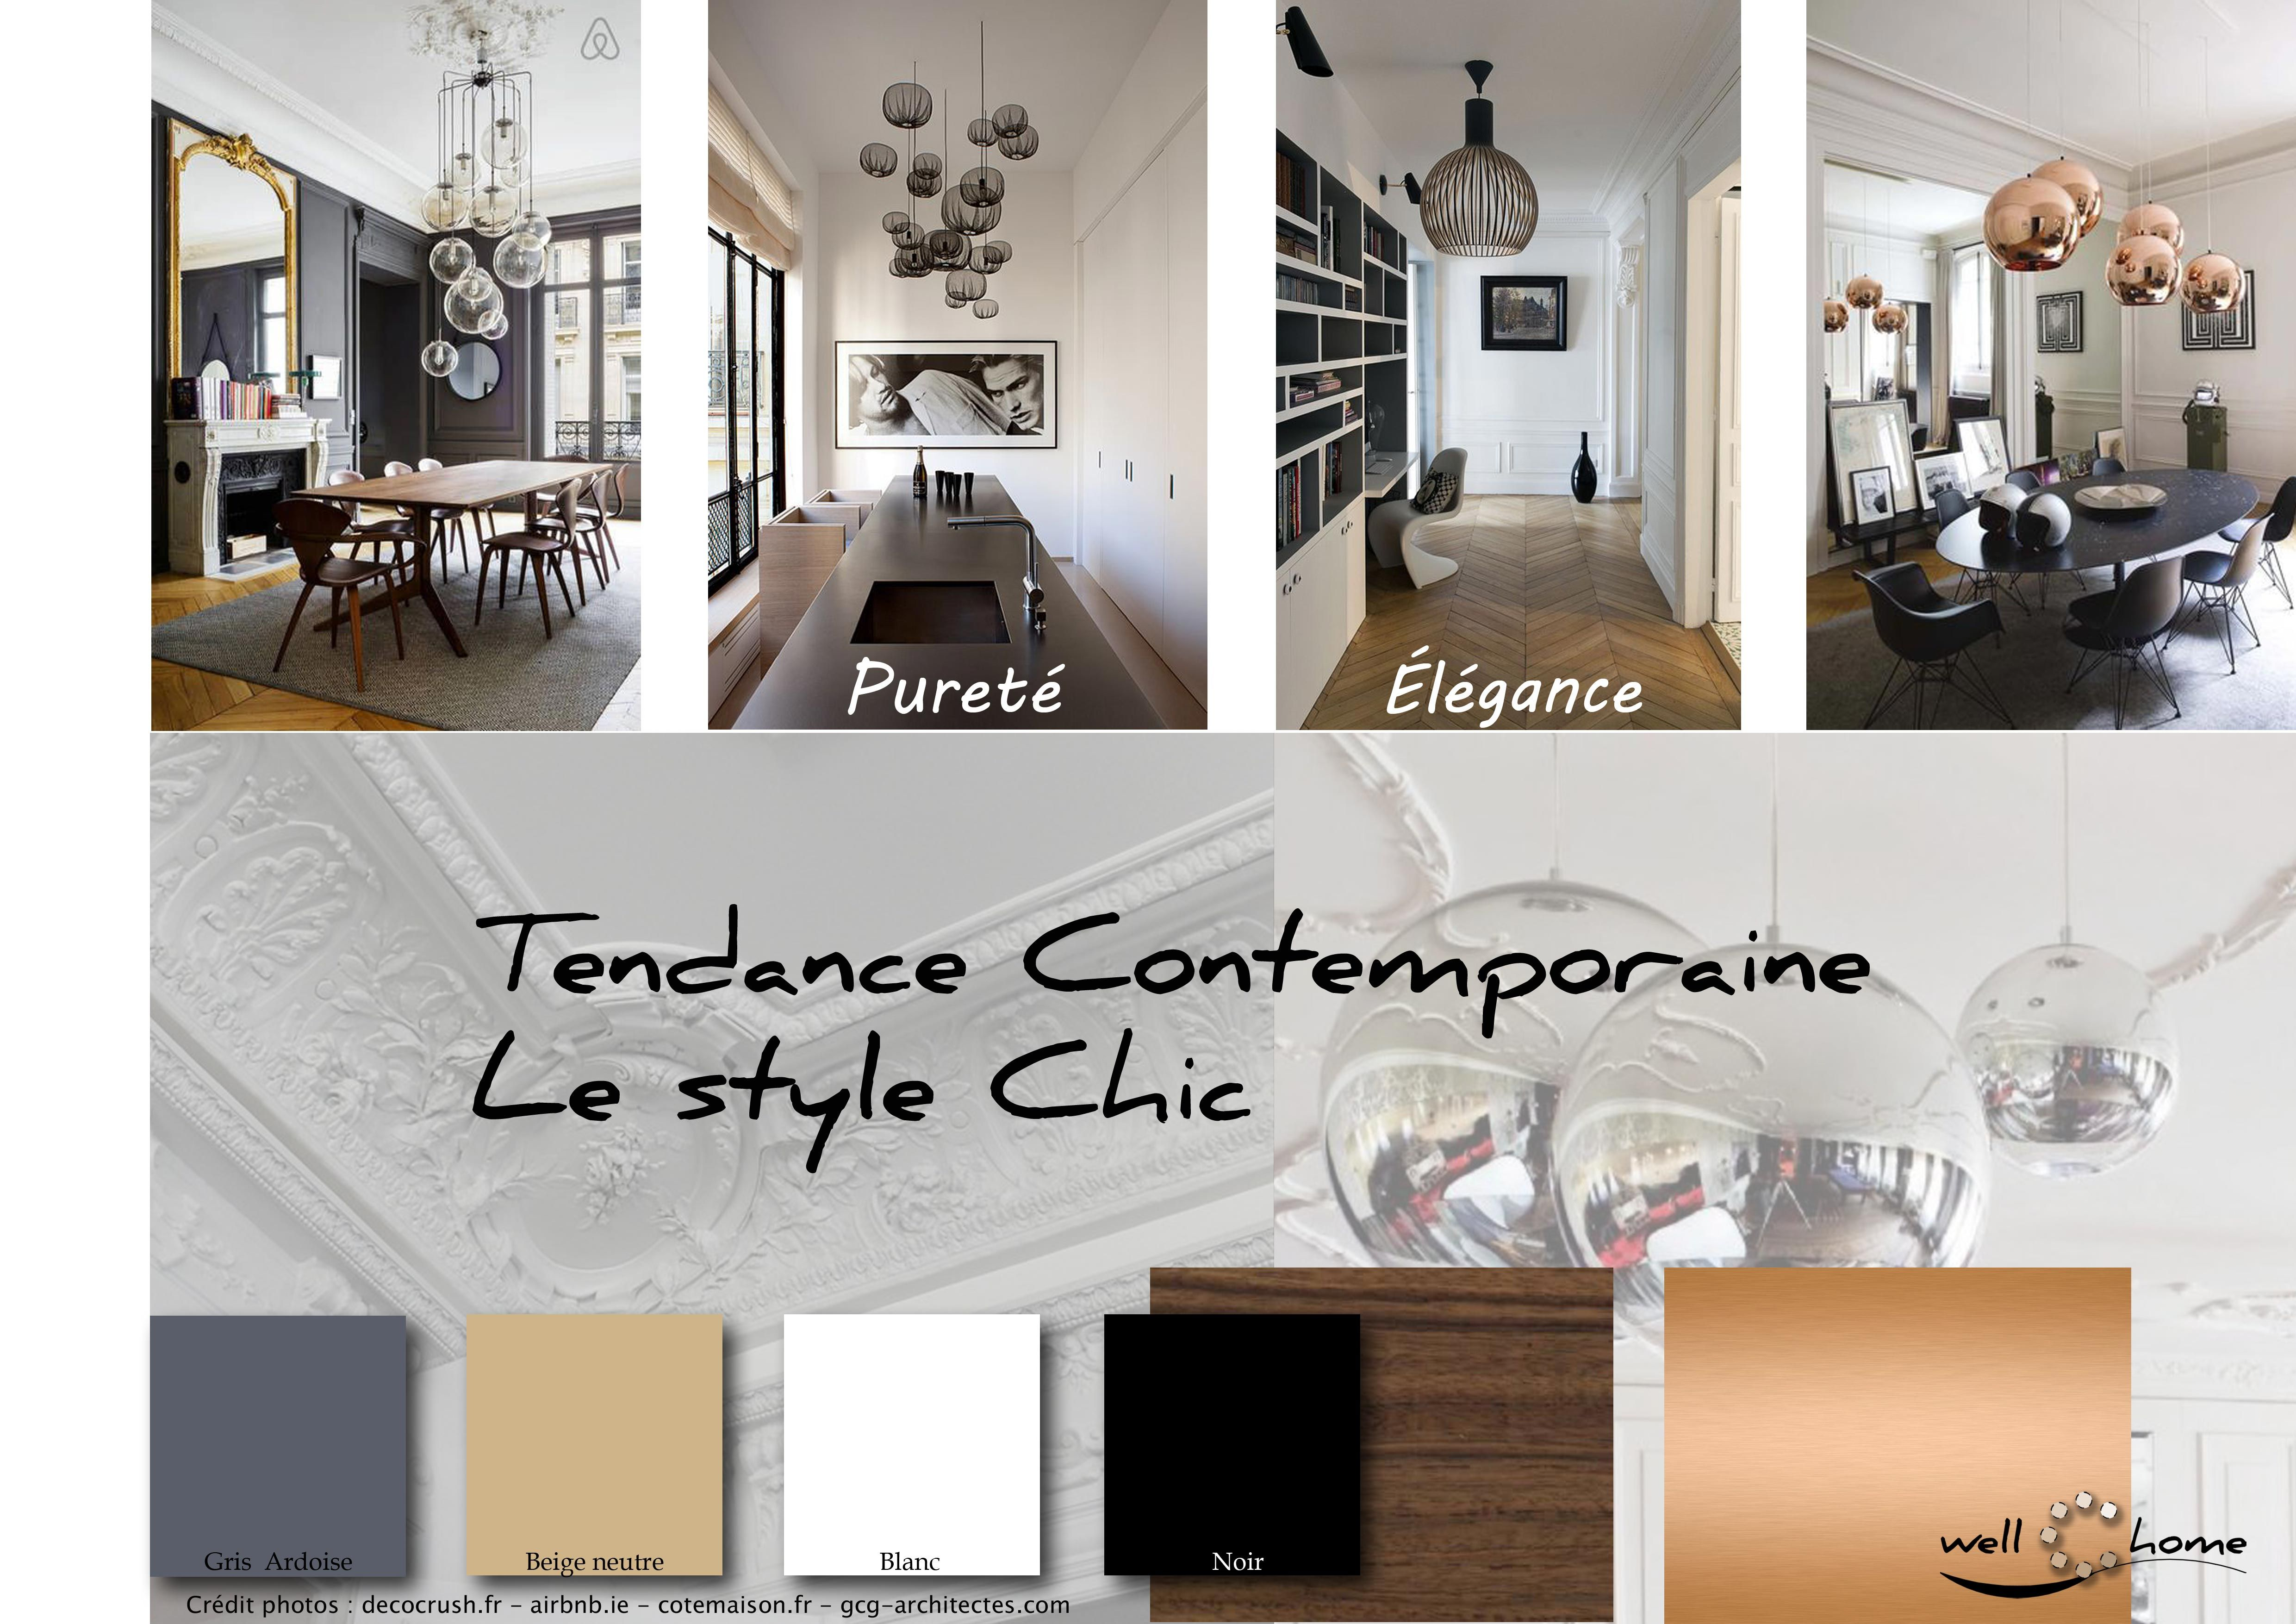 moodboard deco planche d ambiance tendance contemporaine style chic realisation well c home